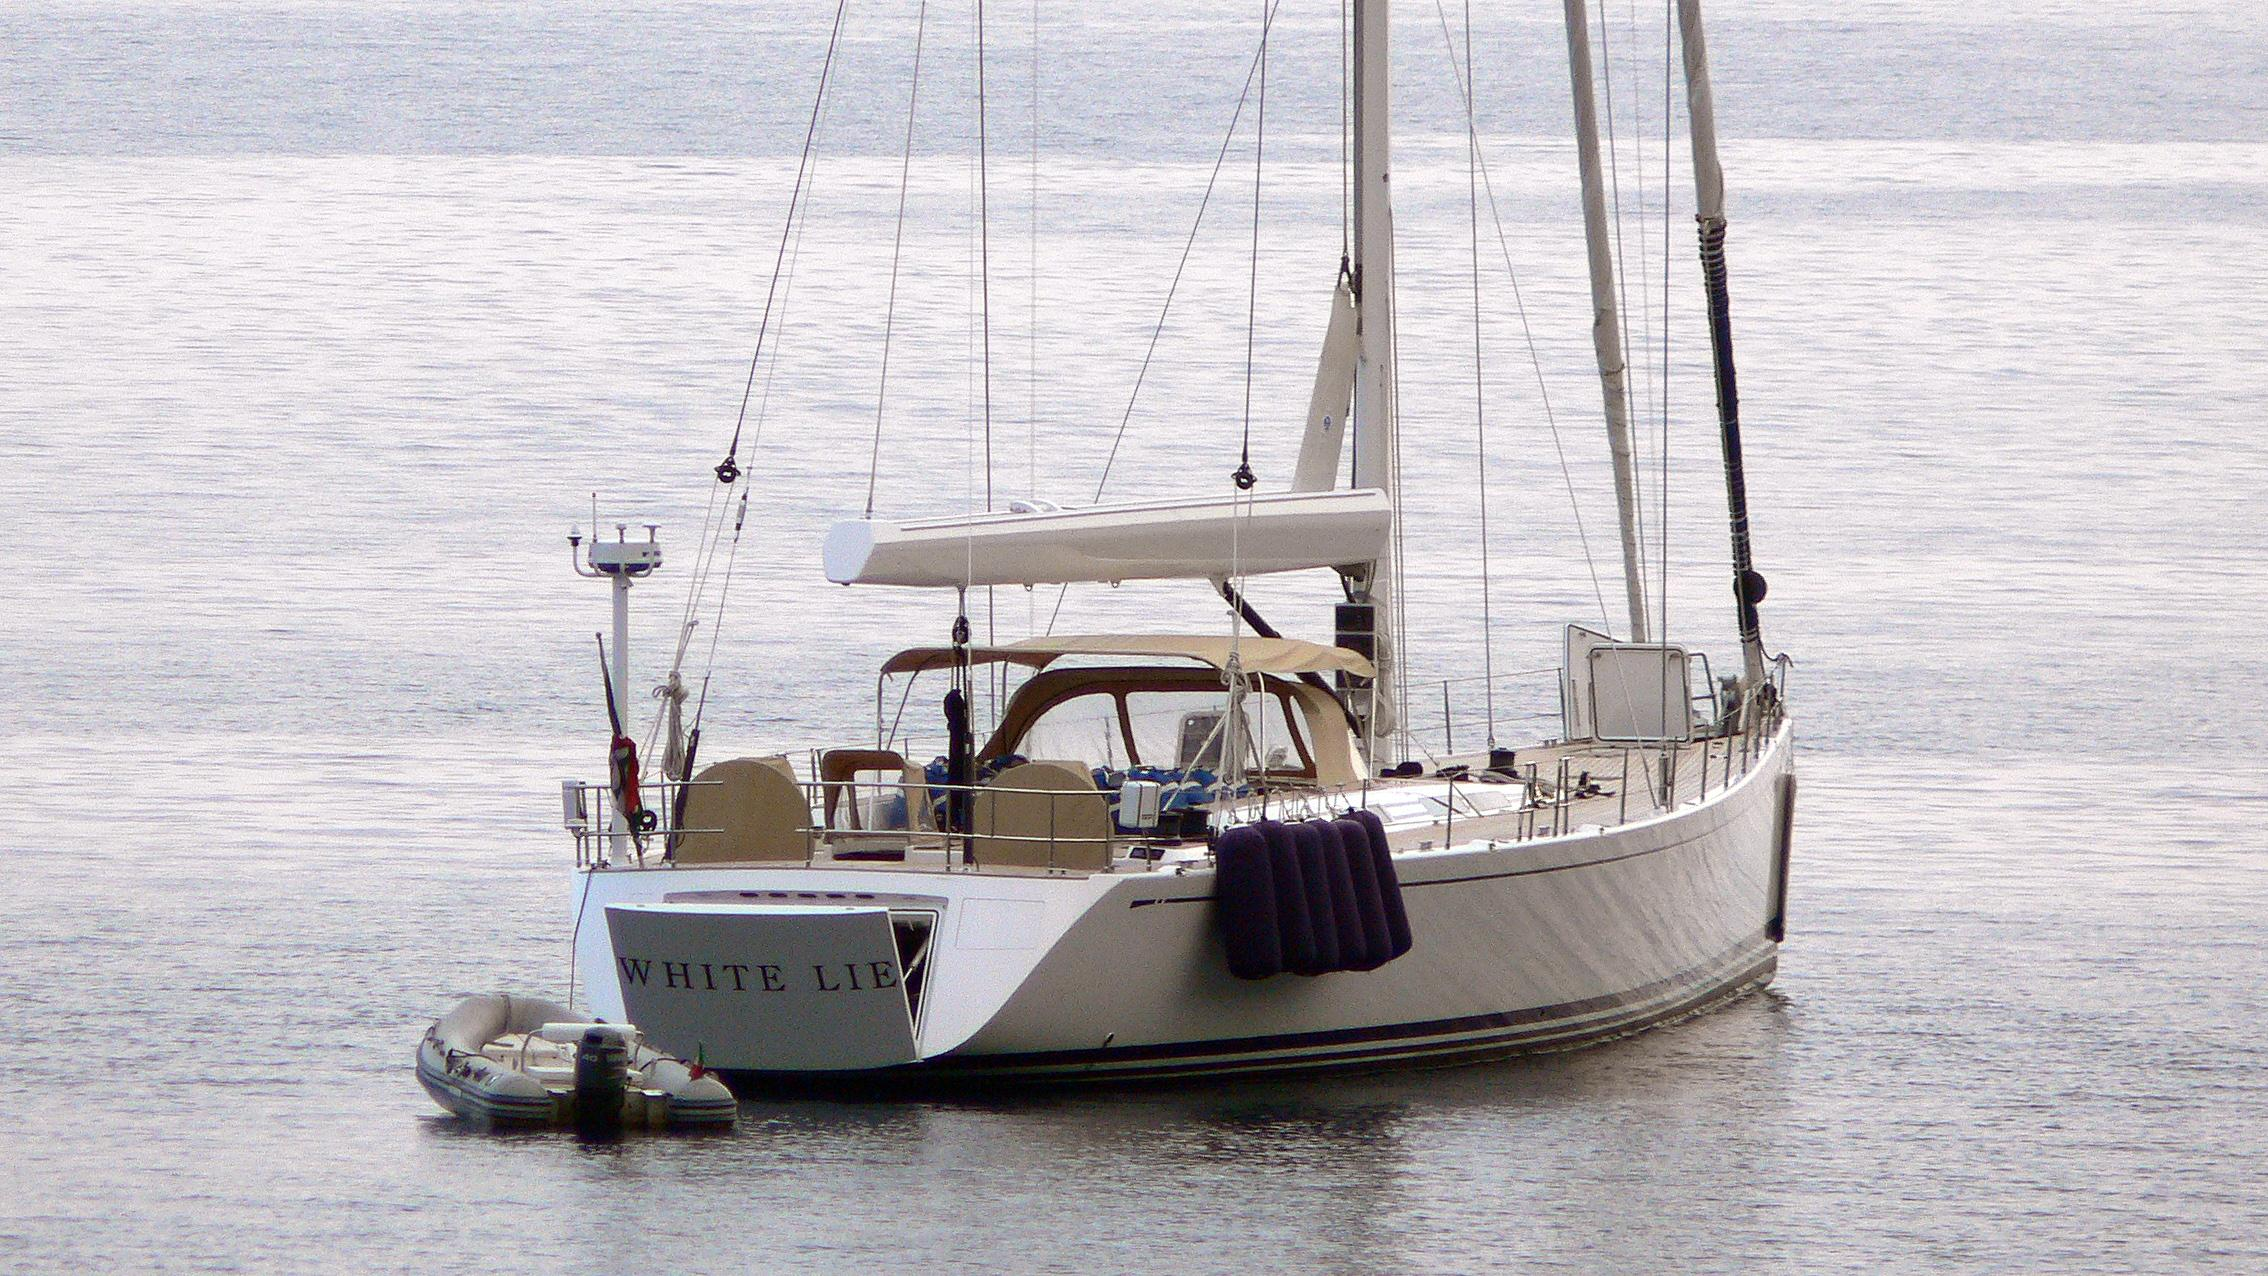 white-lie-sailing-yacht-nautors-swan-90-2008-28m-rear-profile